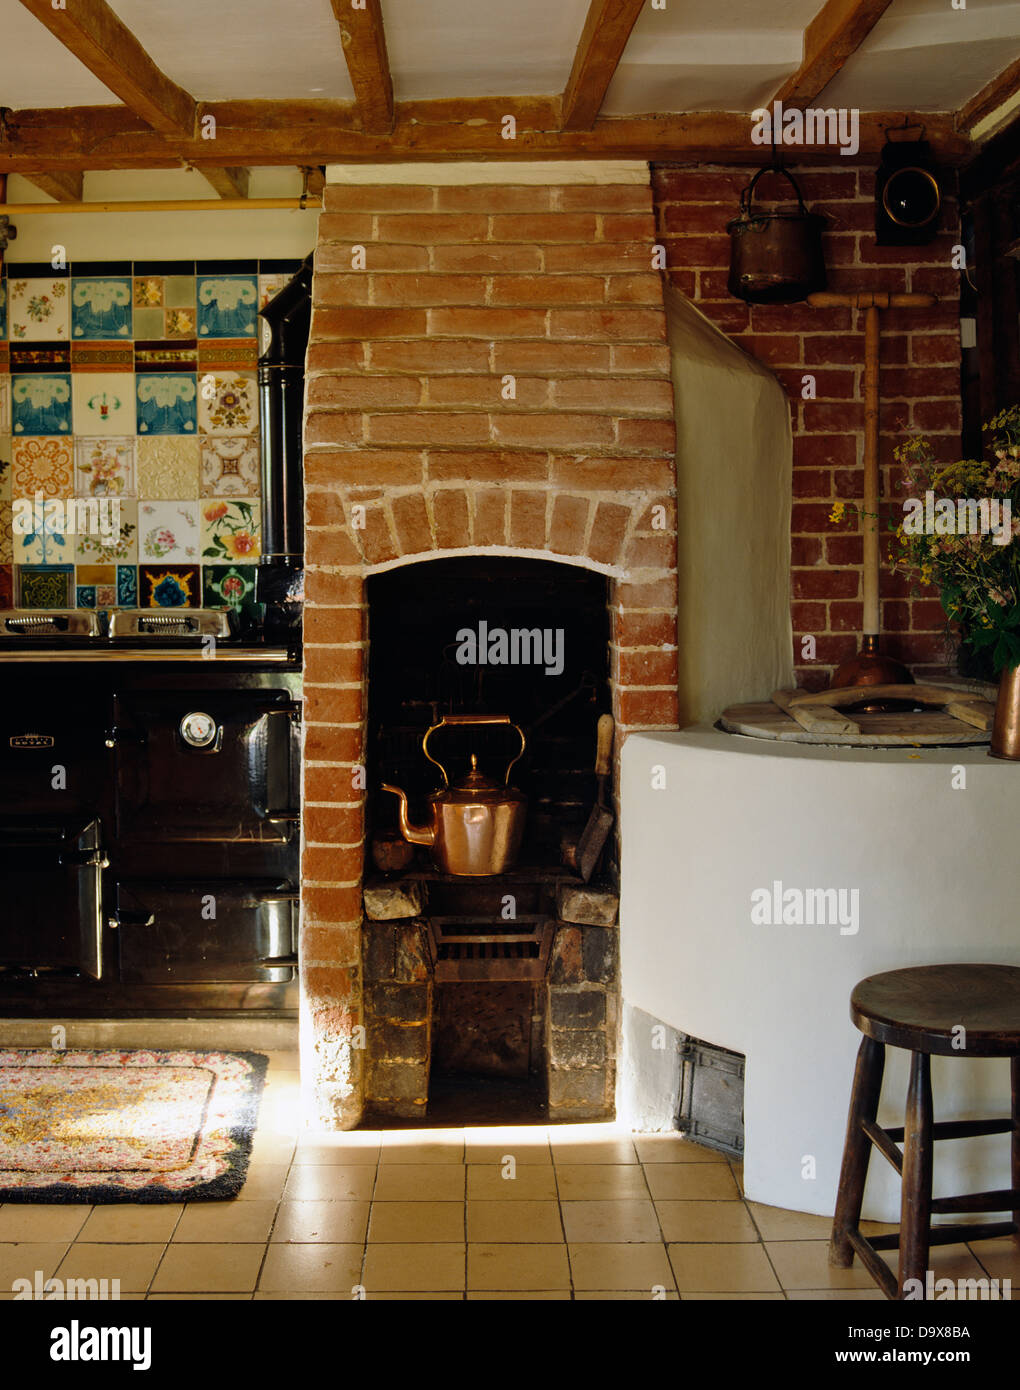 Copper Kettle On Original Brick Stove In Country Kitchen